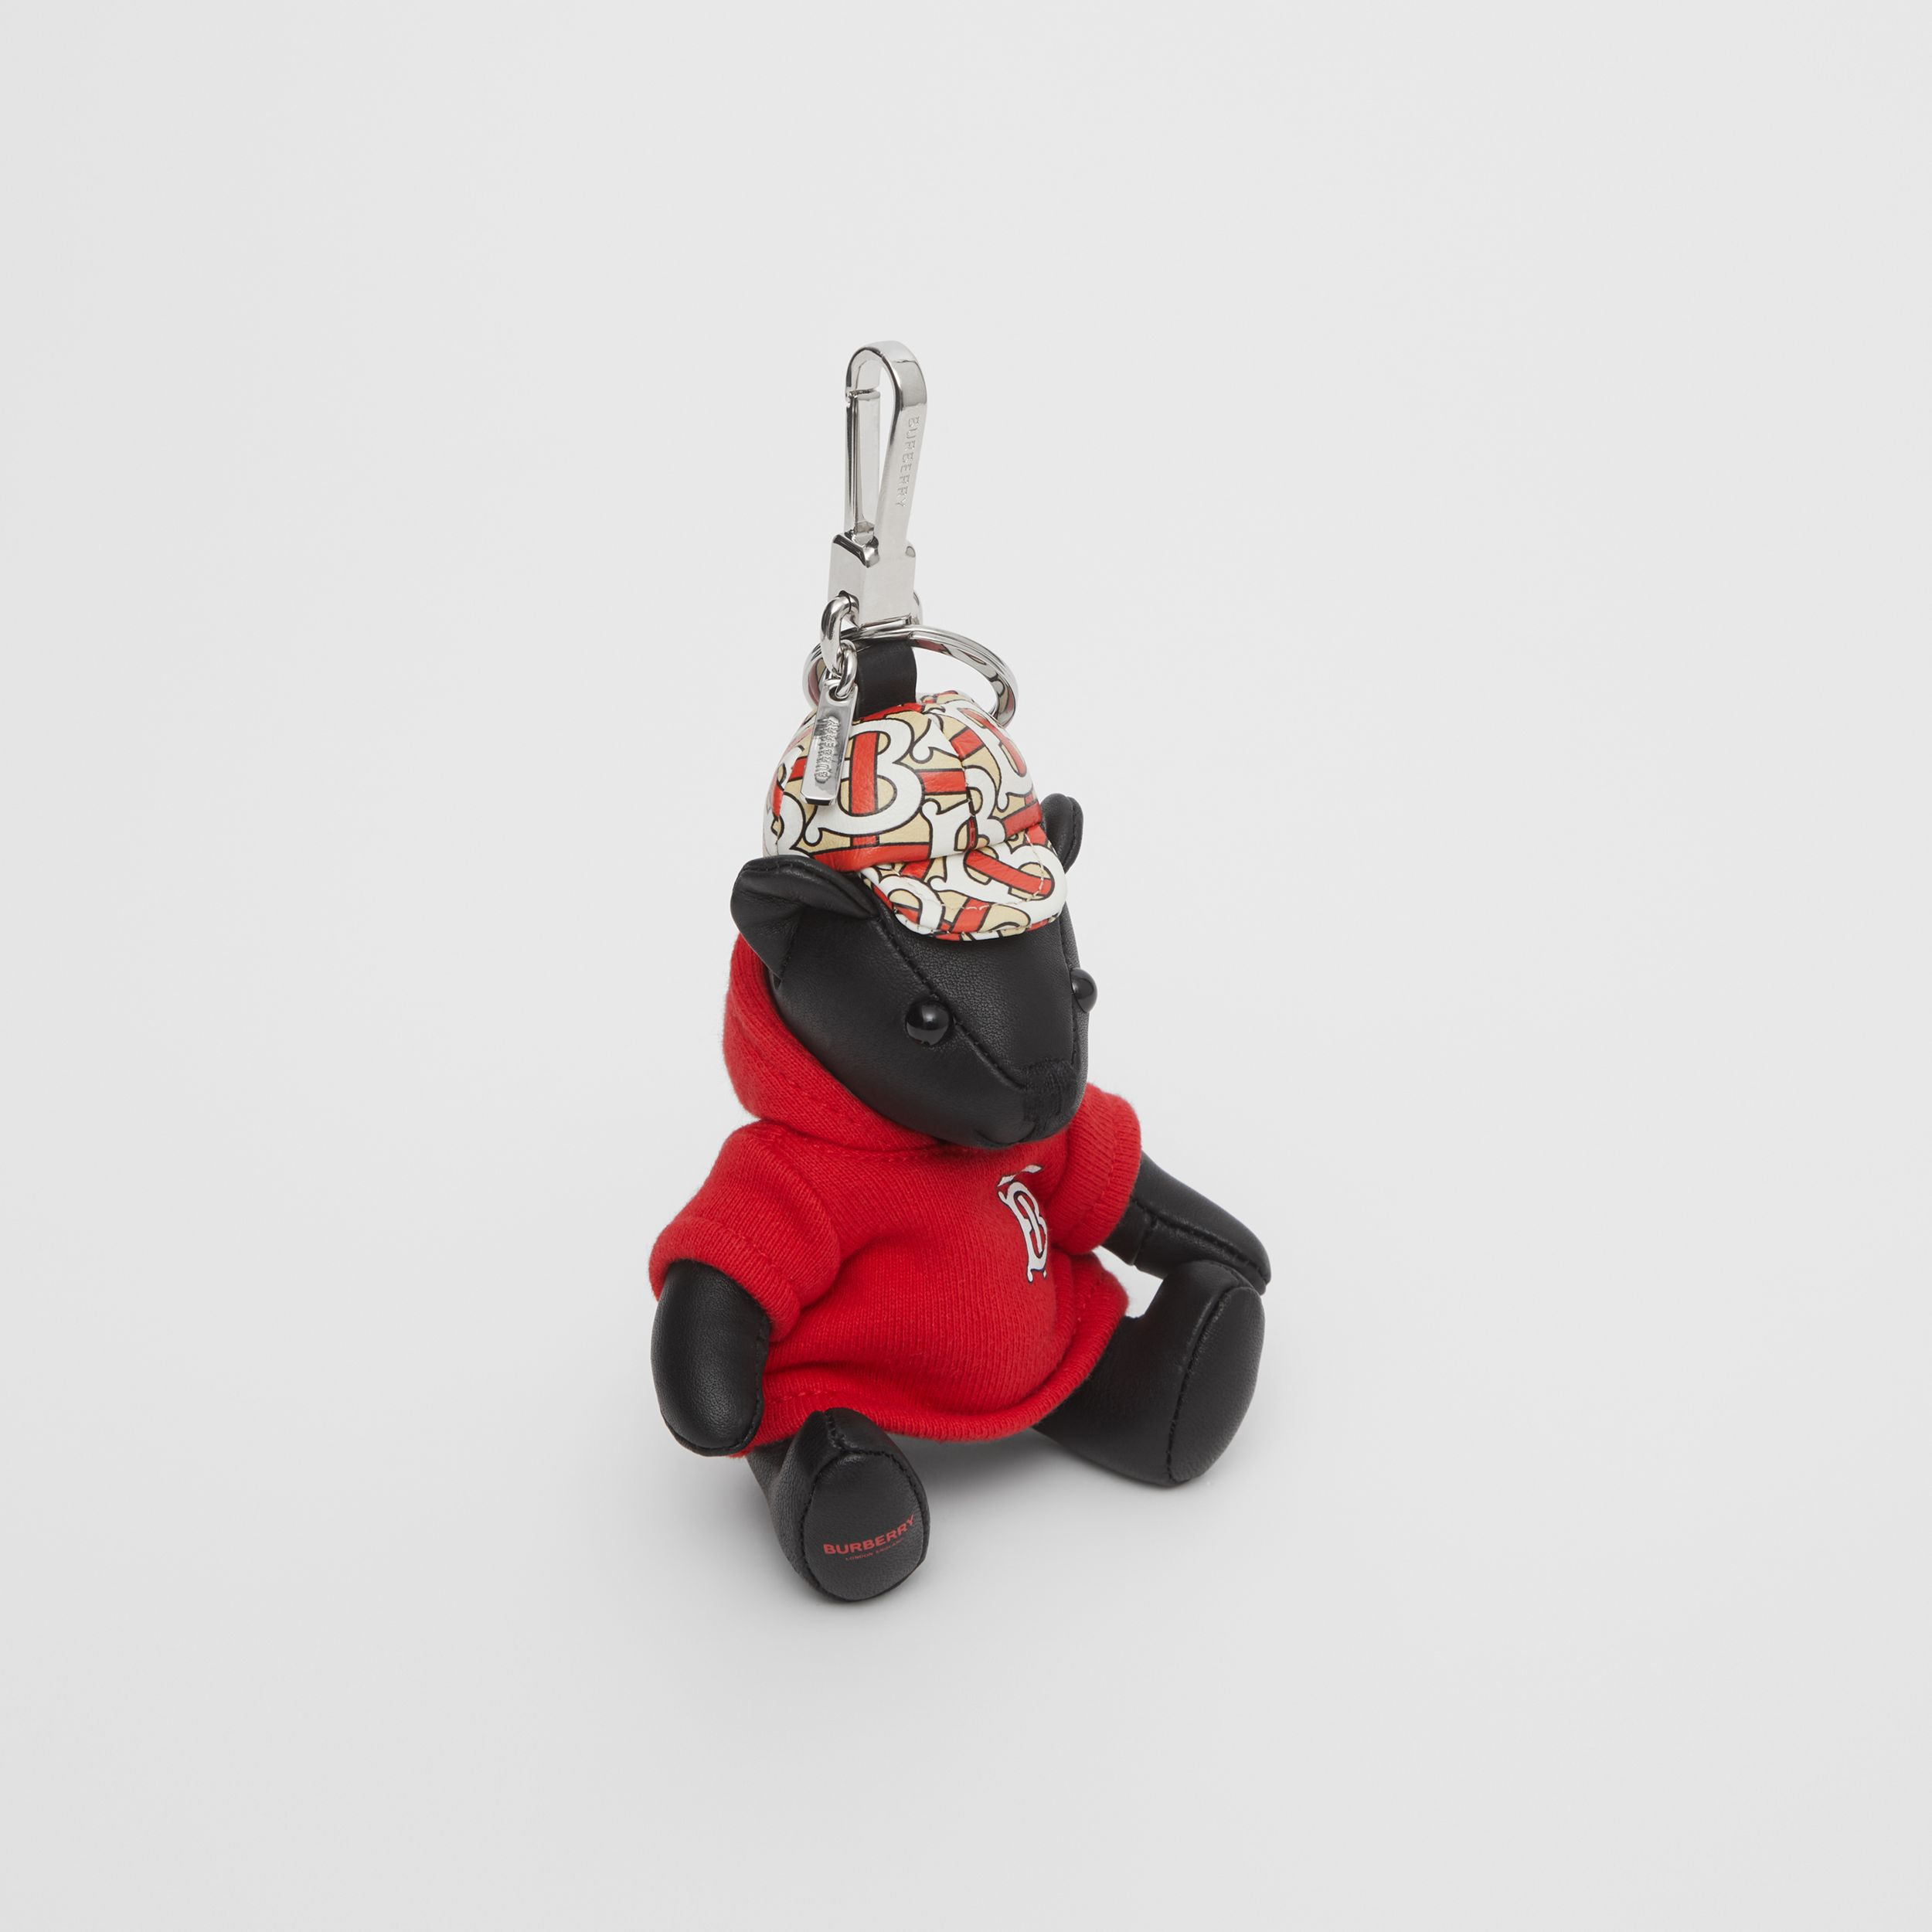 Thomas Bear Charm in Monogram Motif Hoodie in Black/red | Burberry Singapore - 1